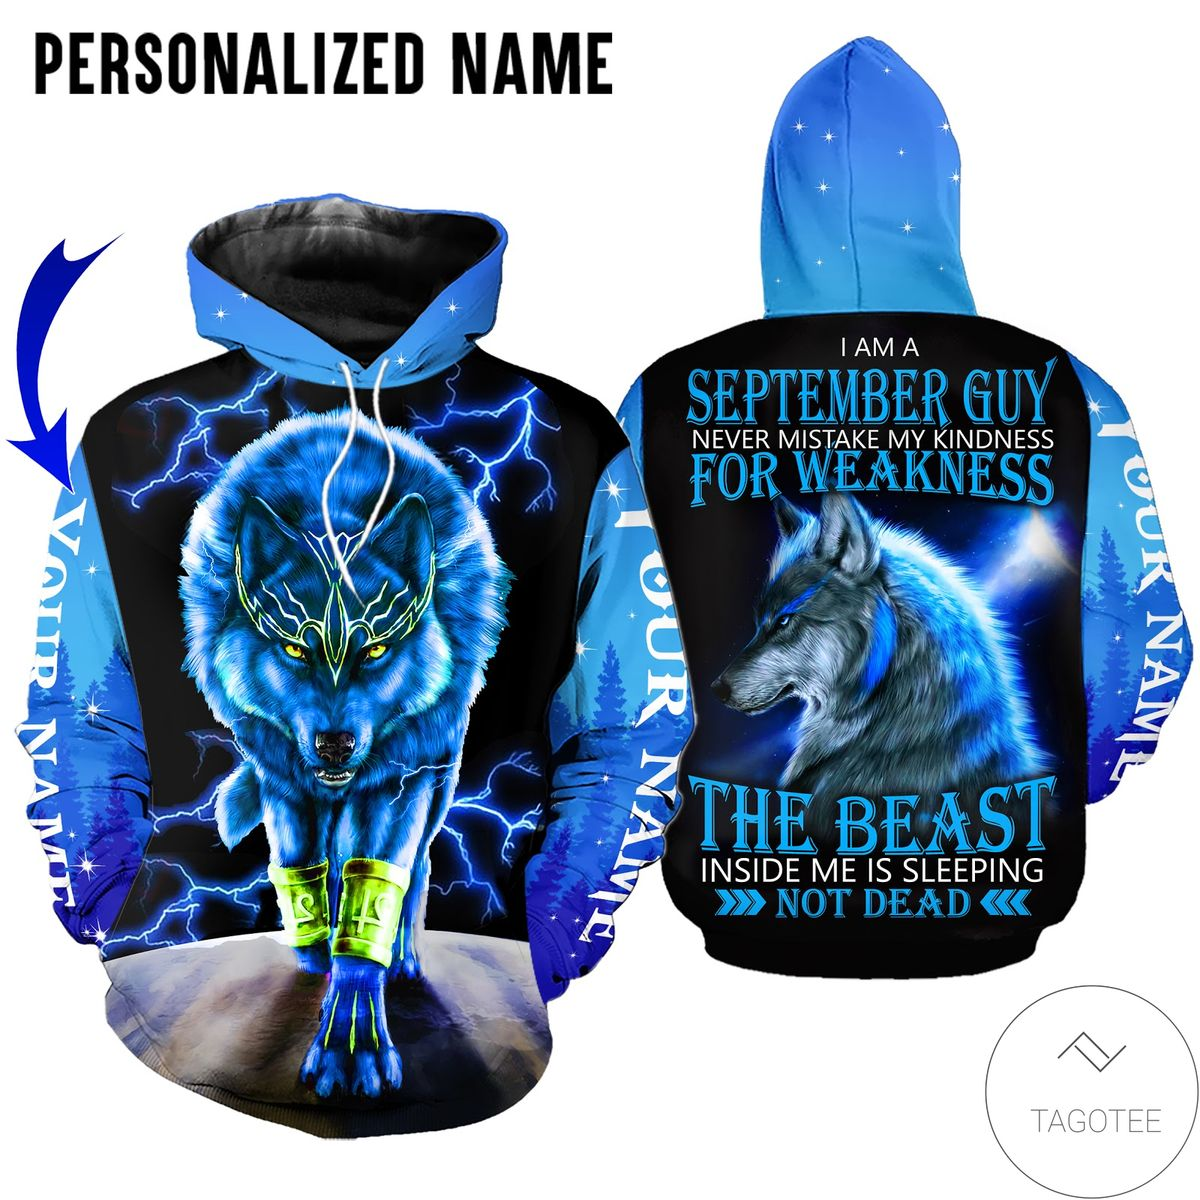 Amazon Personalized Name September Guy Wolf The Beast Not Dead All Over Print Hoodie